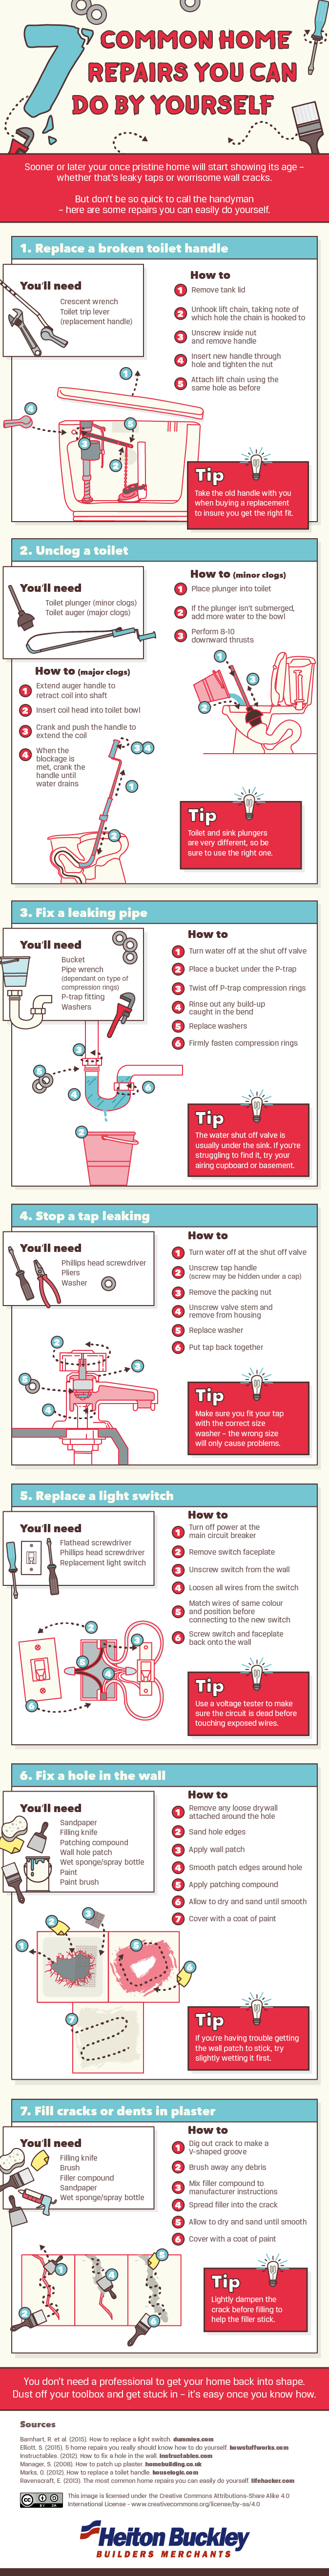 7 DIY Ways to Fix Normal Wear-n-Tear in Your Home - Infographic